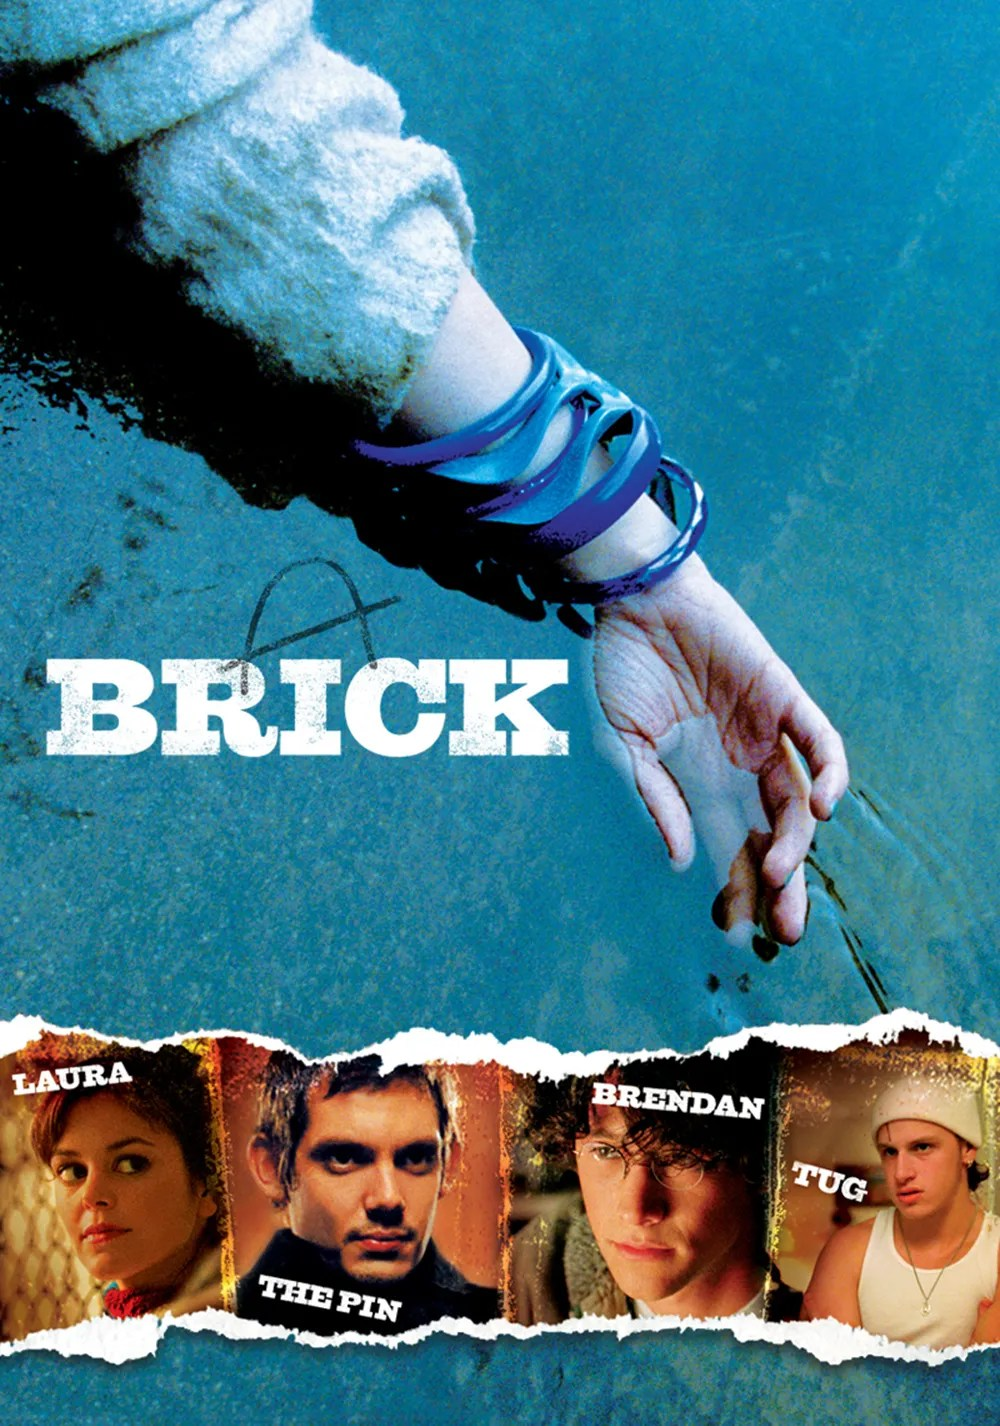 Image result for brick movie poster